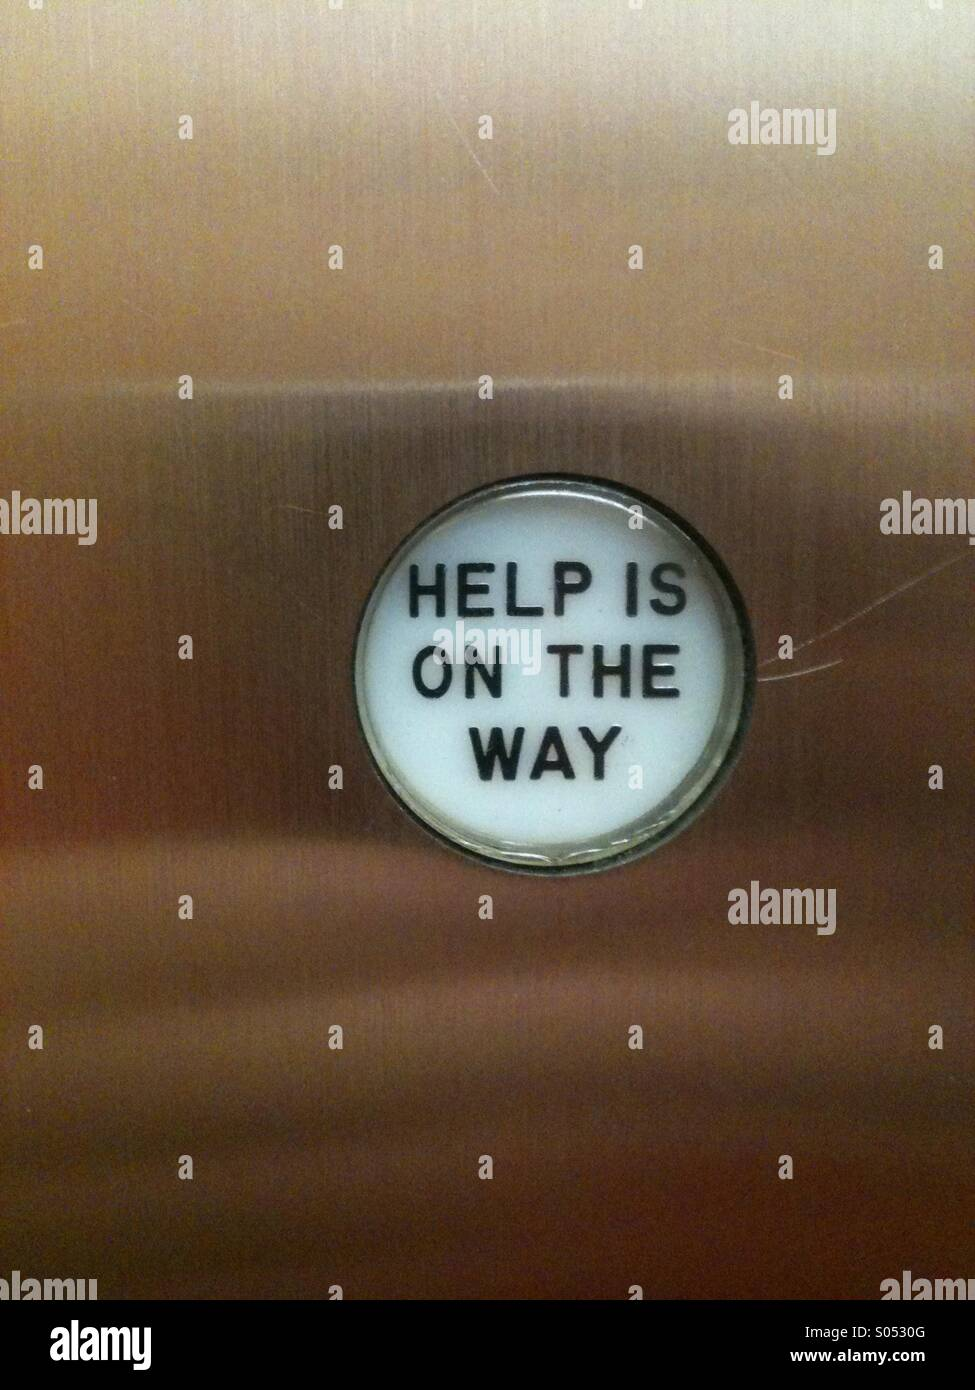 Help button in an elevator - Stock Image